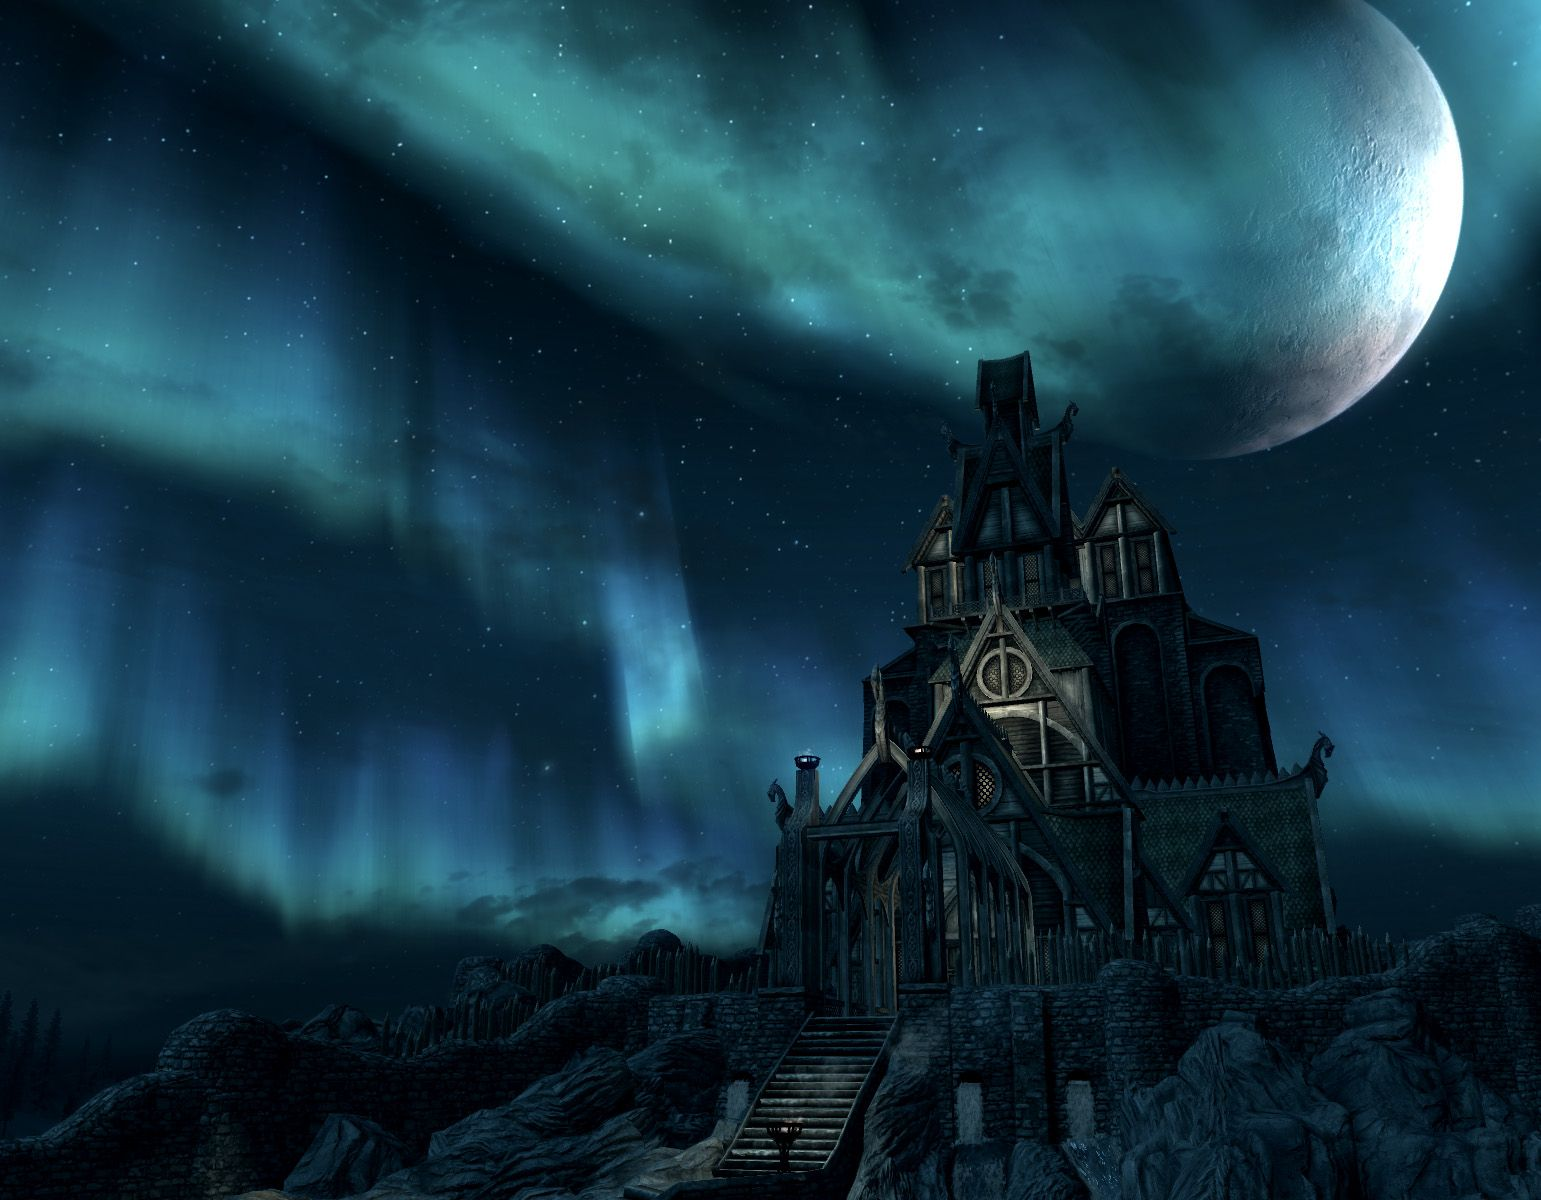 Video game skyrim the elder scrolls video game moon building structure wallpaper sim phong - Video game live wallpapers ...